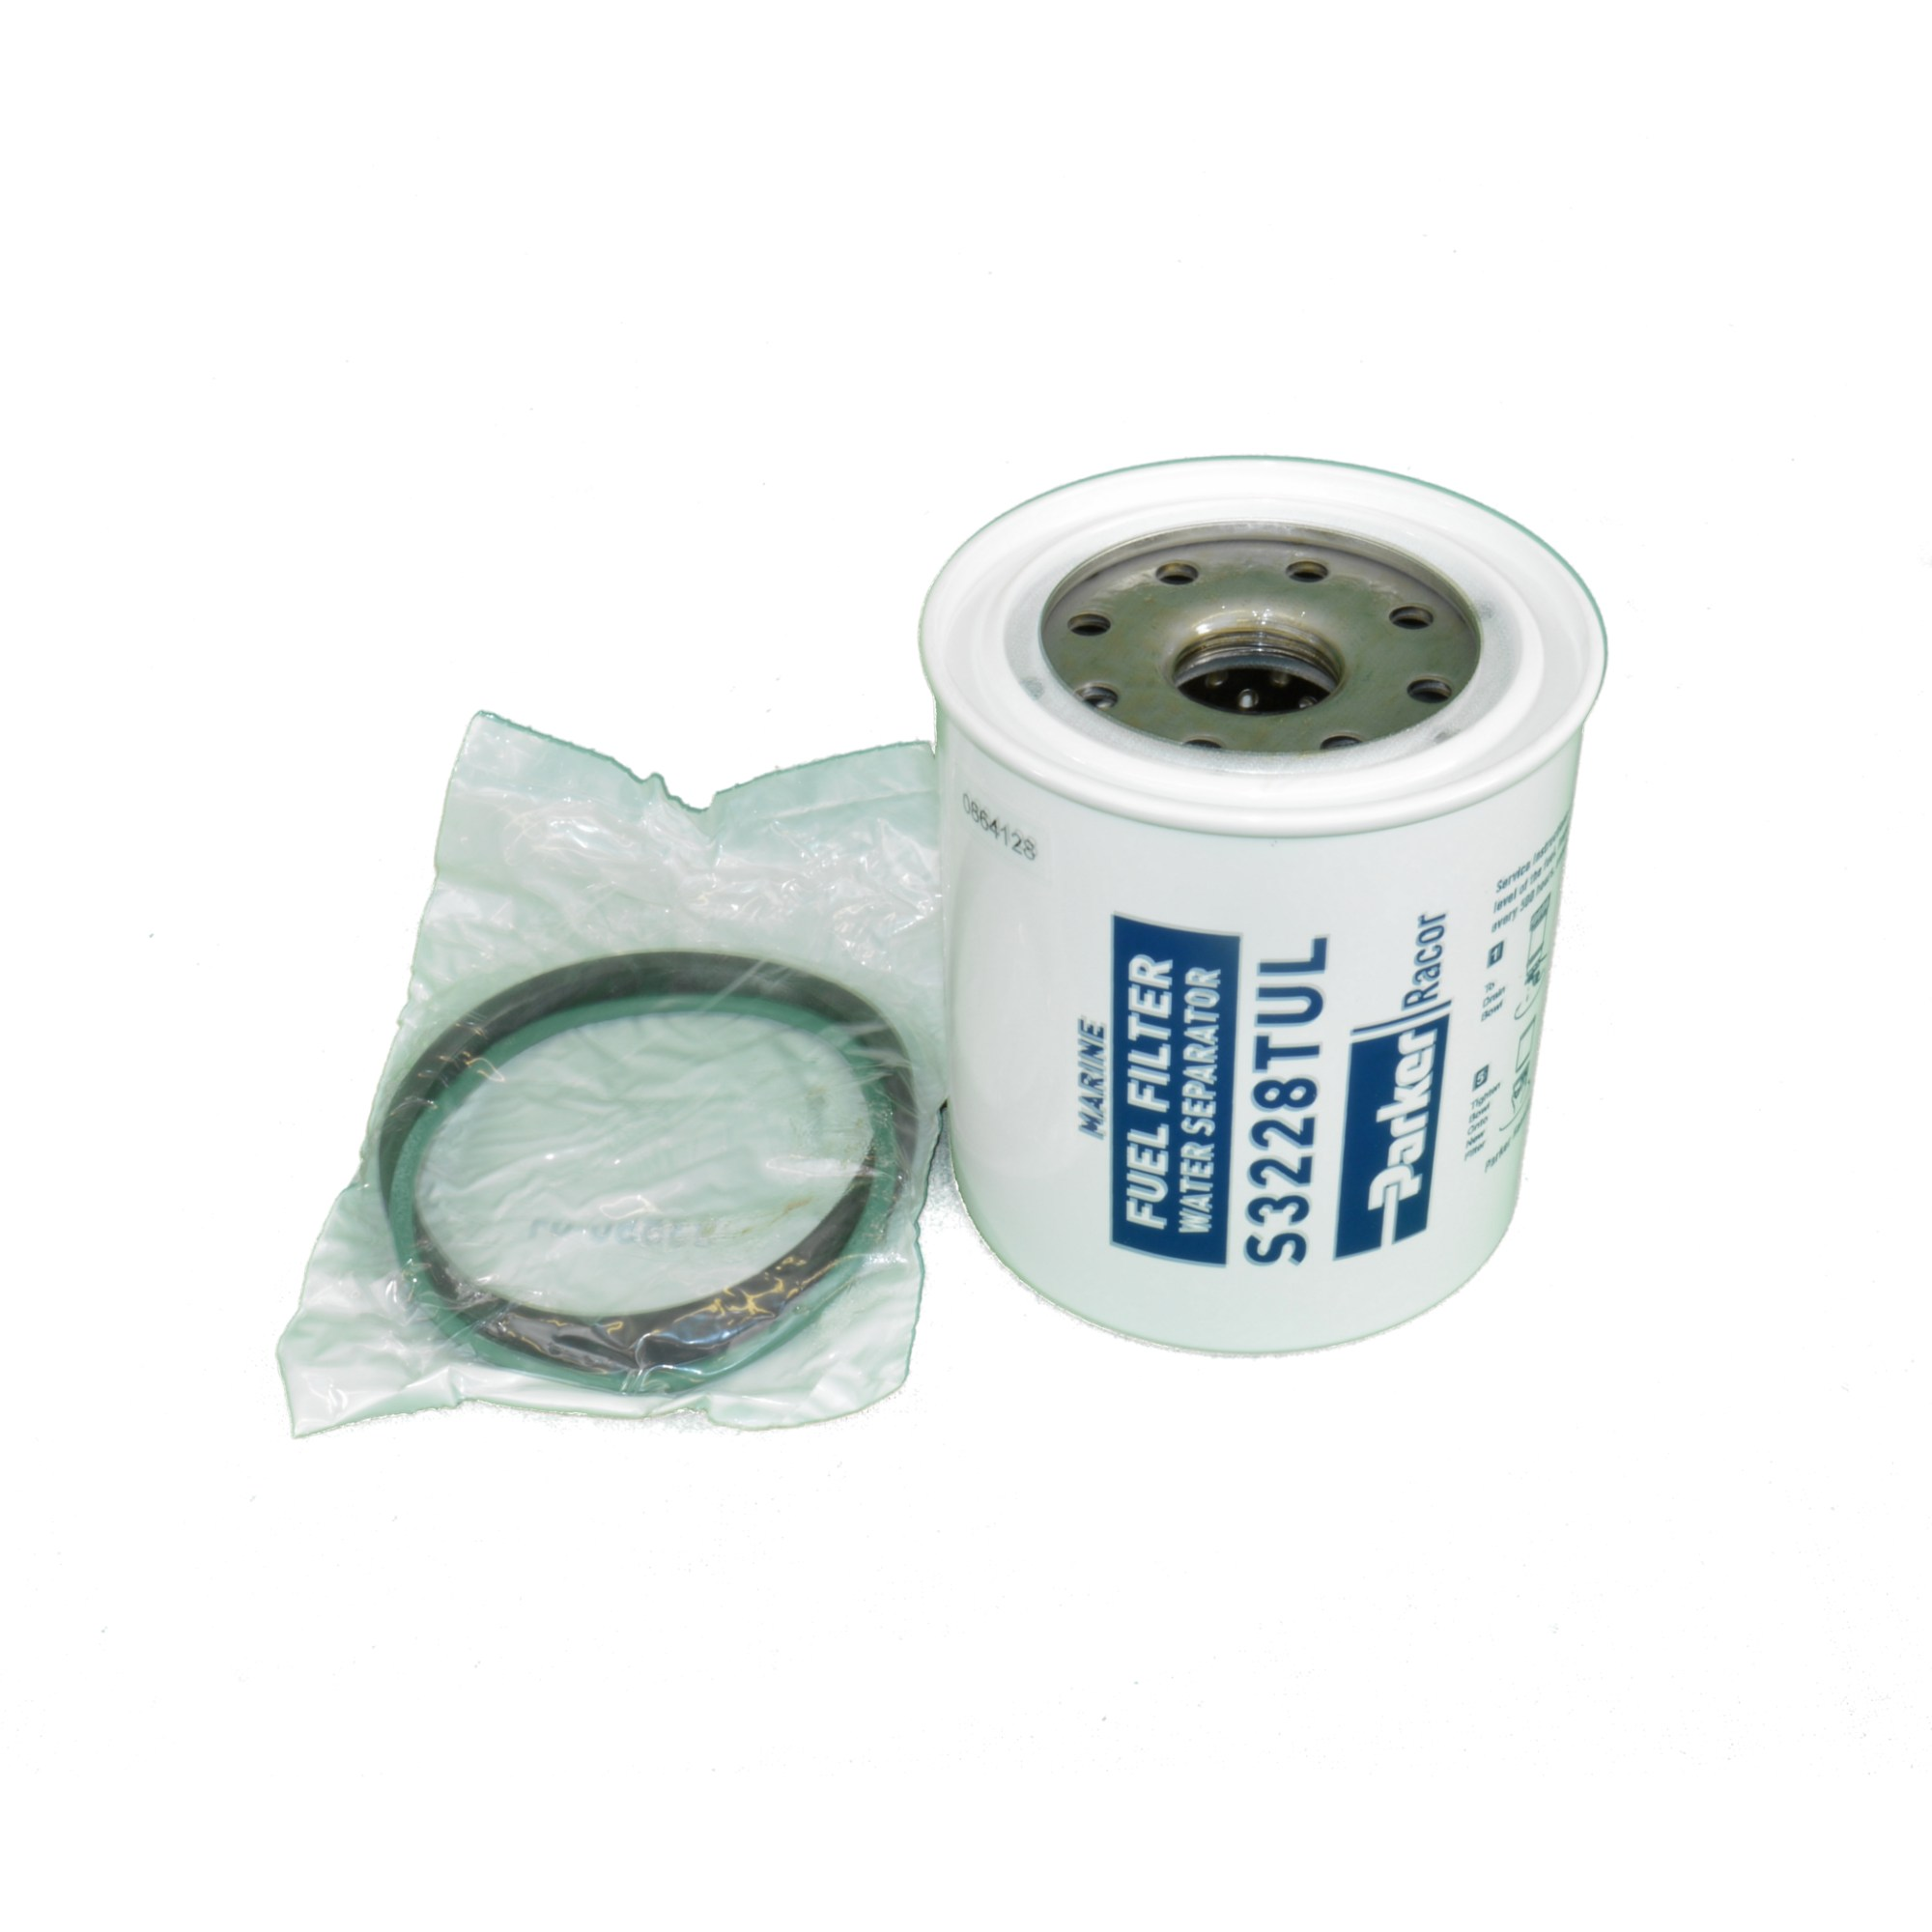 hight resolution of fuel filter racor spin on replacement for pcm spin on r080020